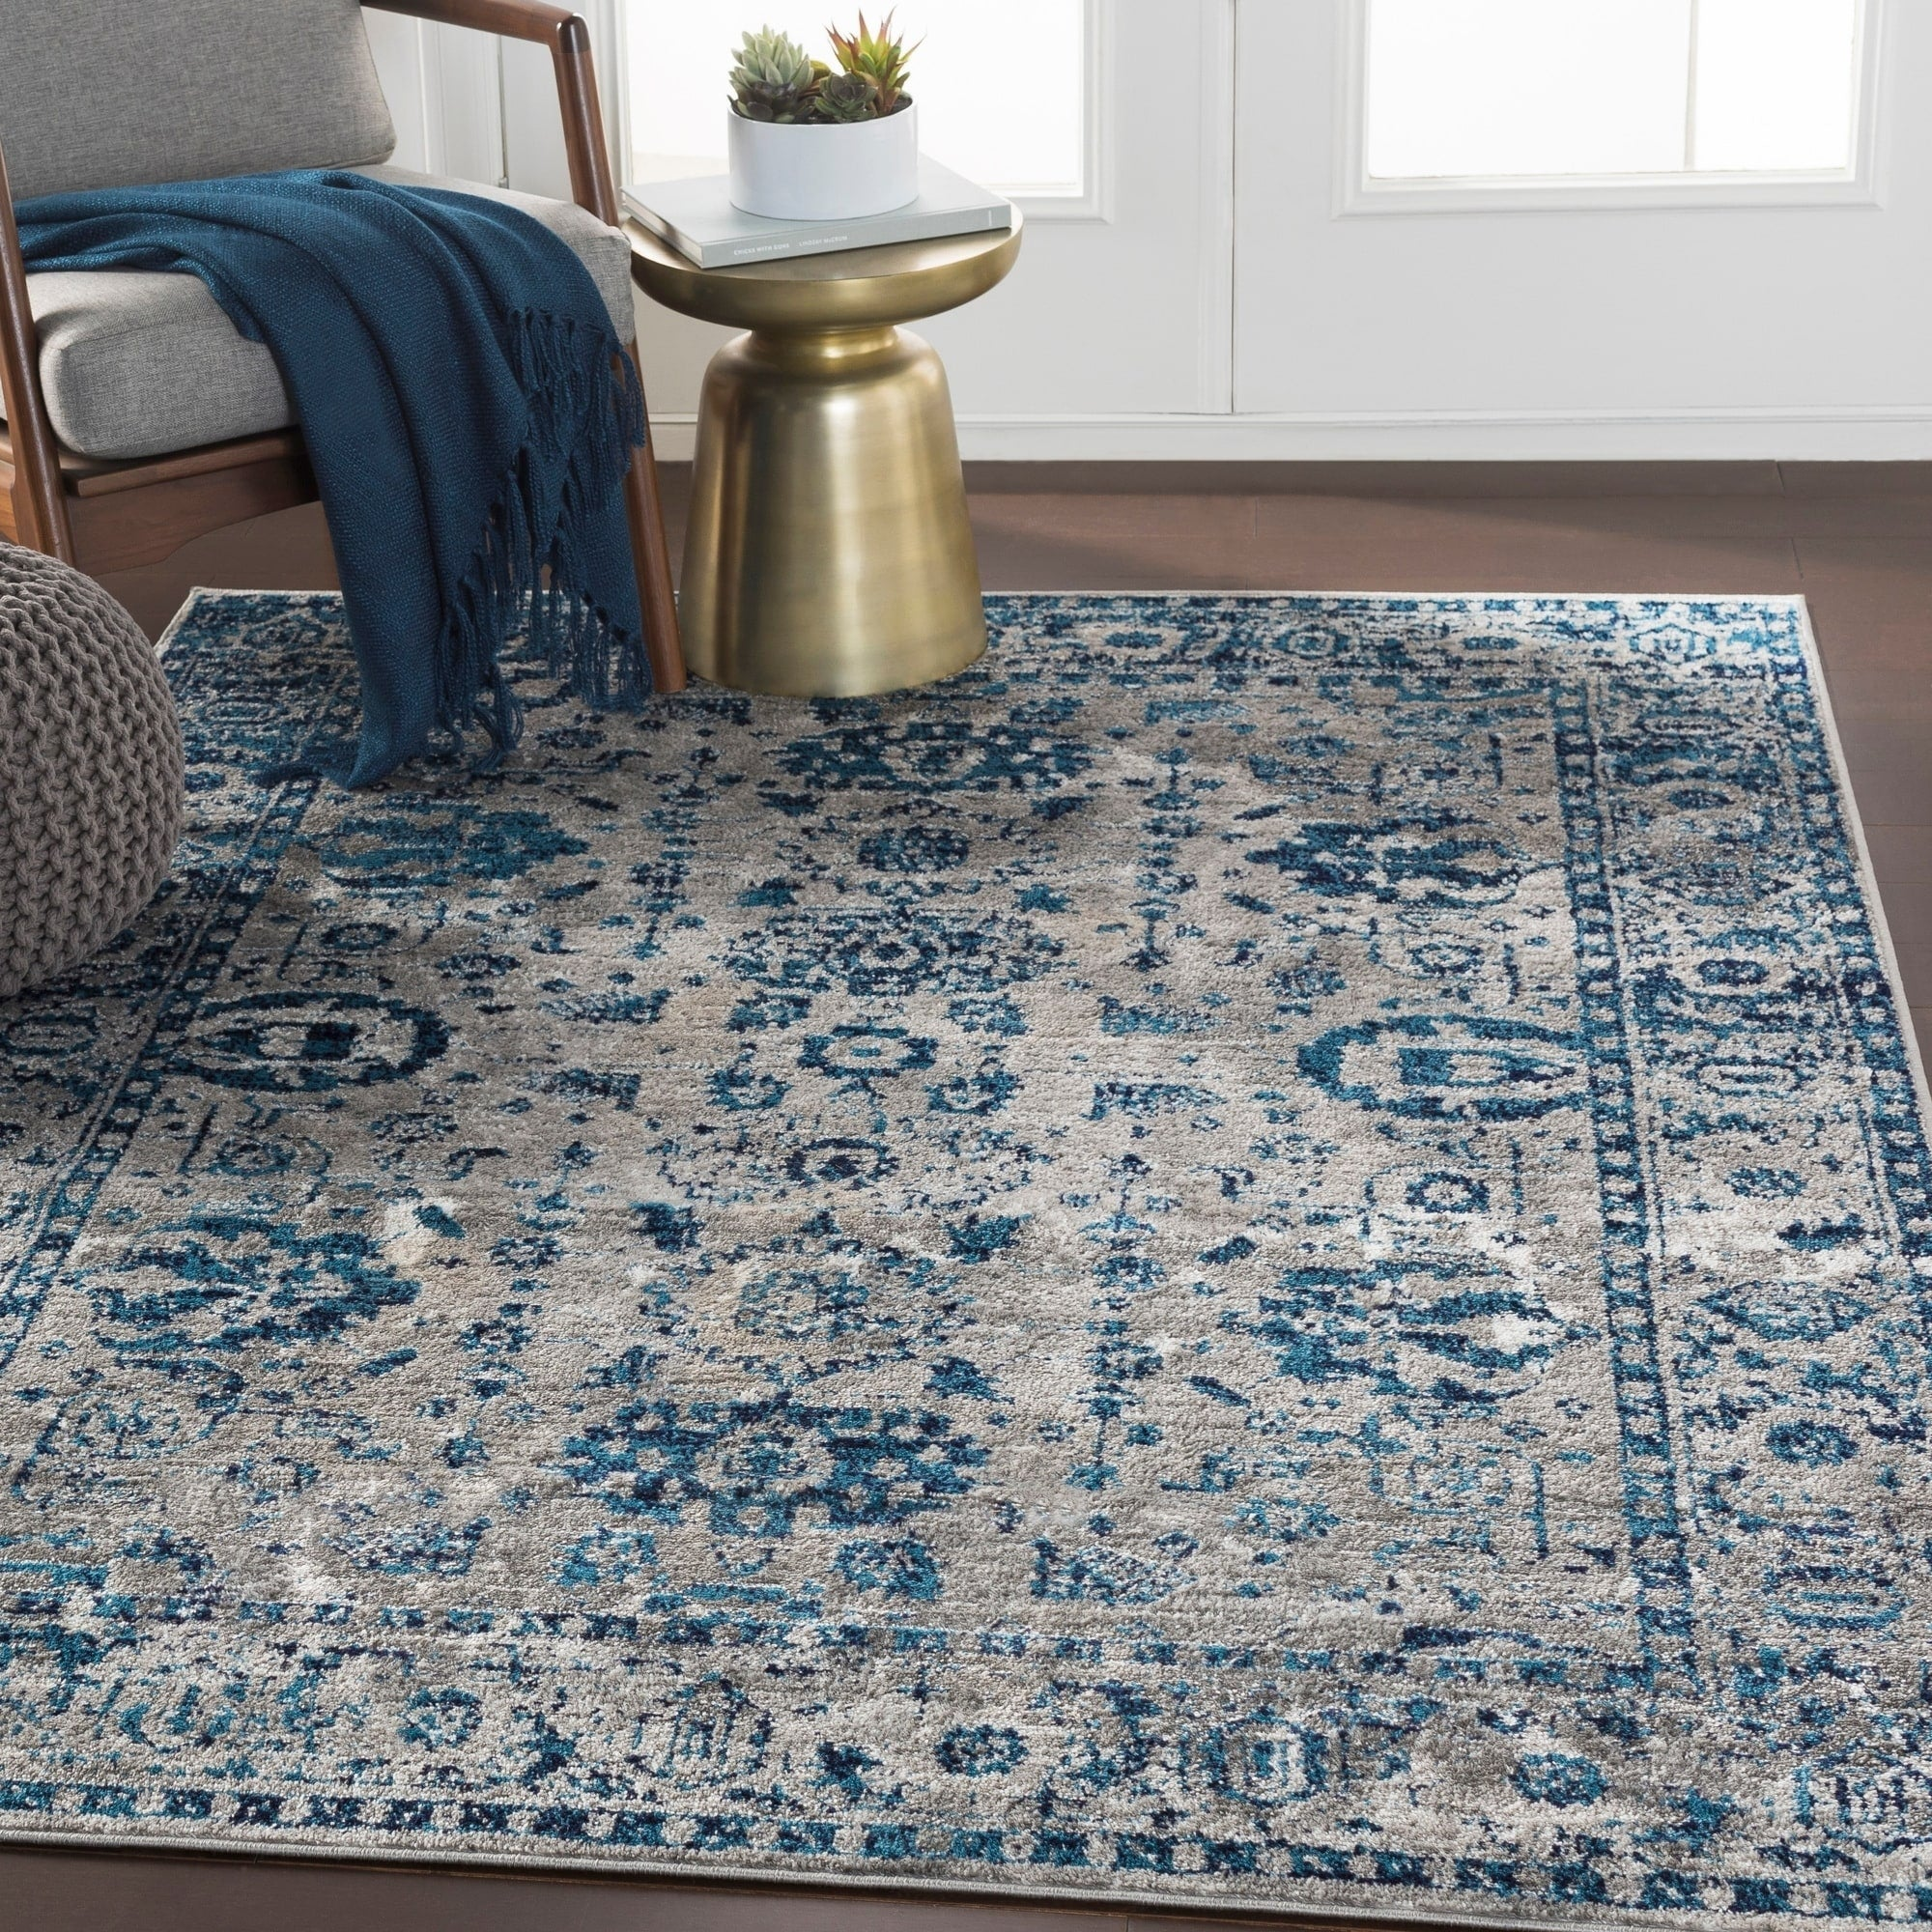 Traditional Distressed Persian Pattern Sky Blue Light Gray Soft Area R Modern Rugs And Decor